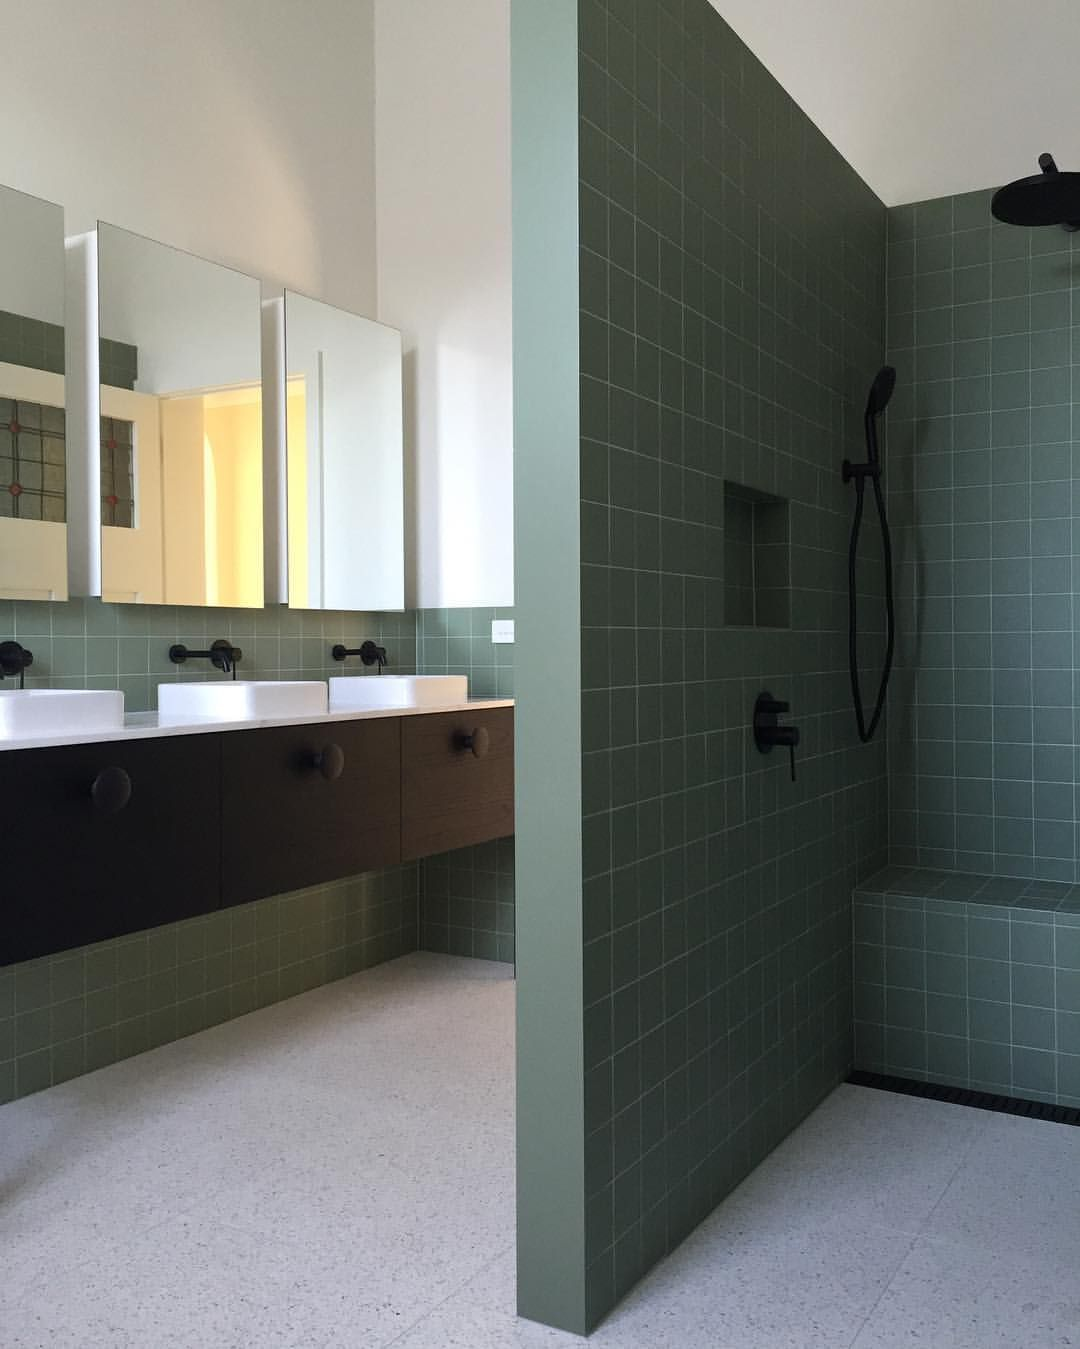 206 Likes 6 Comments Clare Cousins Clarecousins On Instagram Always Nice To Get A Finished Photo From Our Client House Bathroom Bathroom Design Home